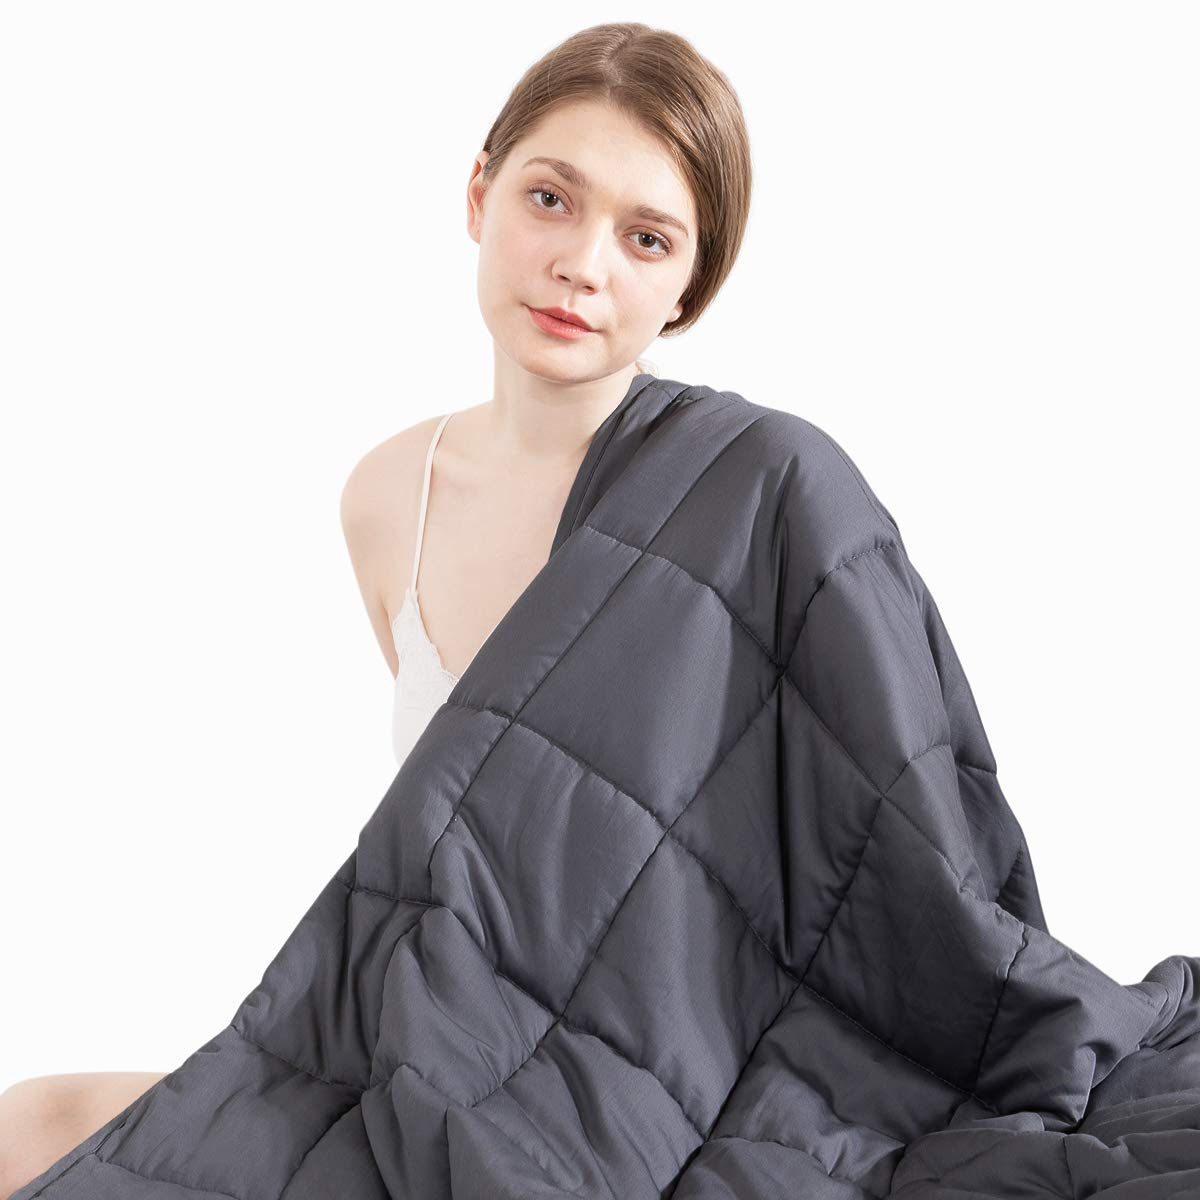 Beauty Kate Weighted Blanket Adult 15 lbs 60''x80'' Queen Size, 100% Organic Cotton with Glass Beads, Heavy Blanket for Improved Sleep & Relieving Anxiety, Grey by Beauty Kate